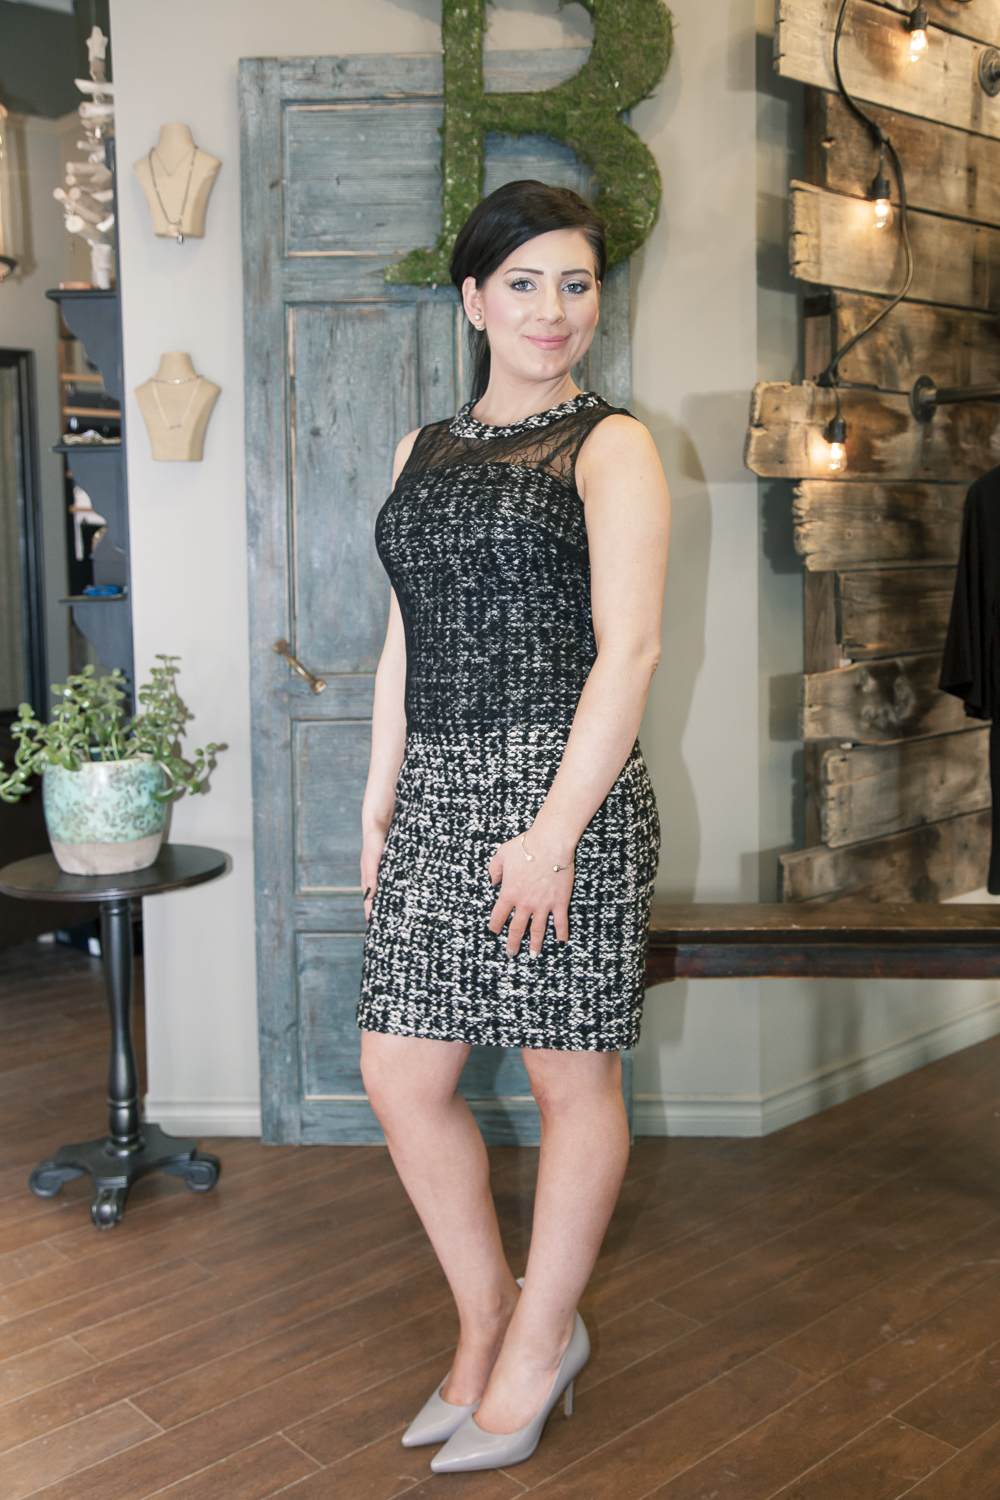 Bella-Maas-Edmonton-style-fashion-tweed-lace-bailey-44-black-and-white-jackie-dress